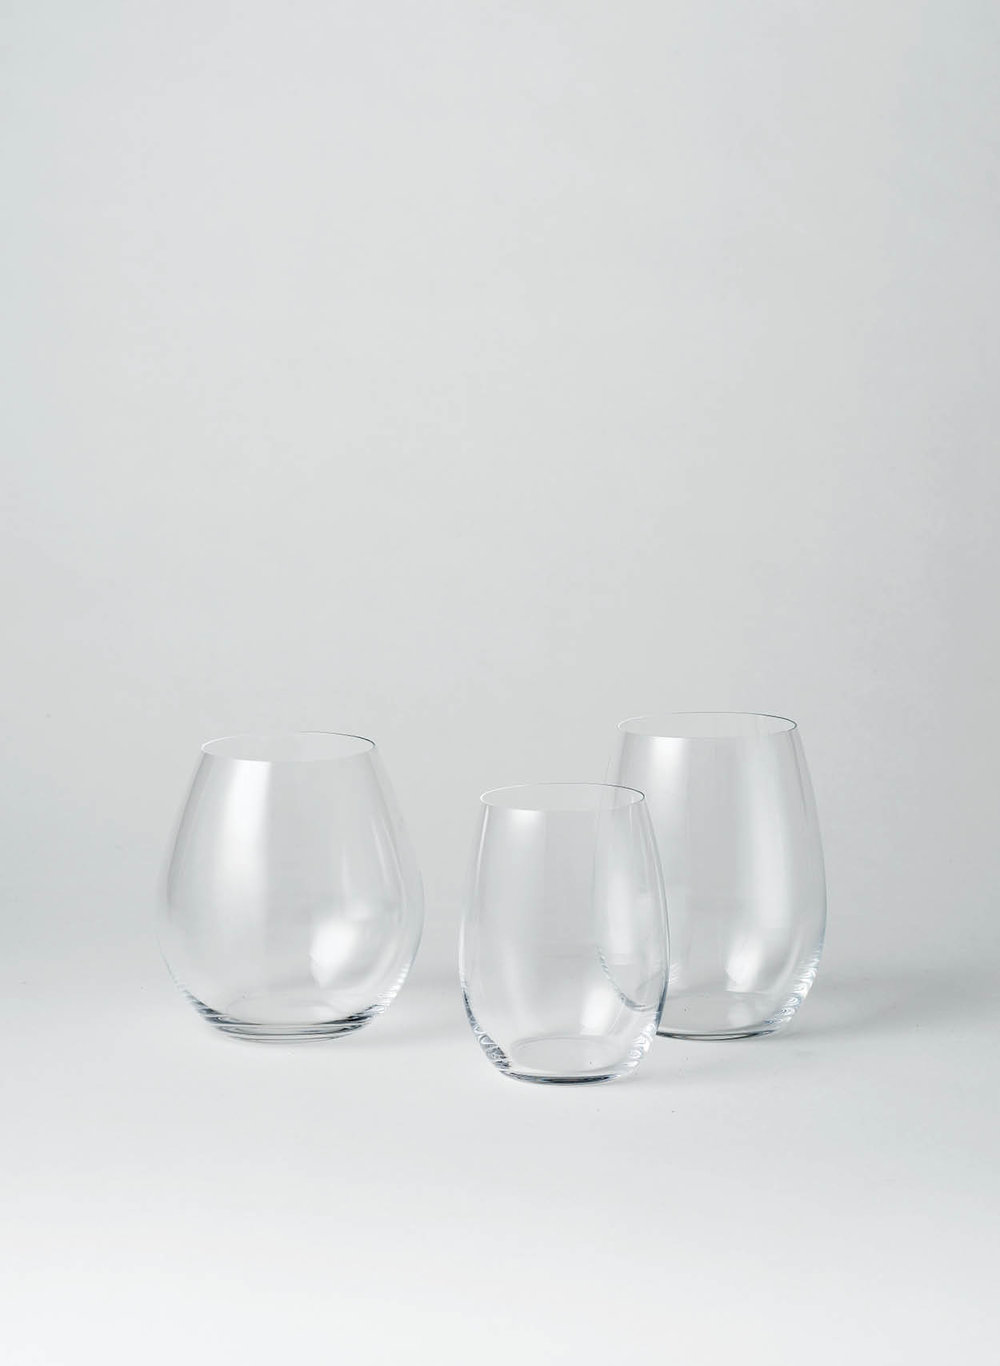 Wine Glasses s/4  from $54.90